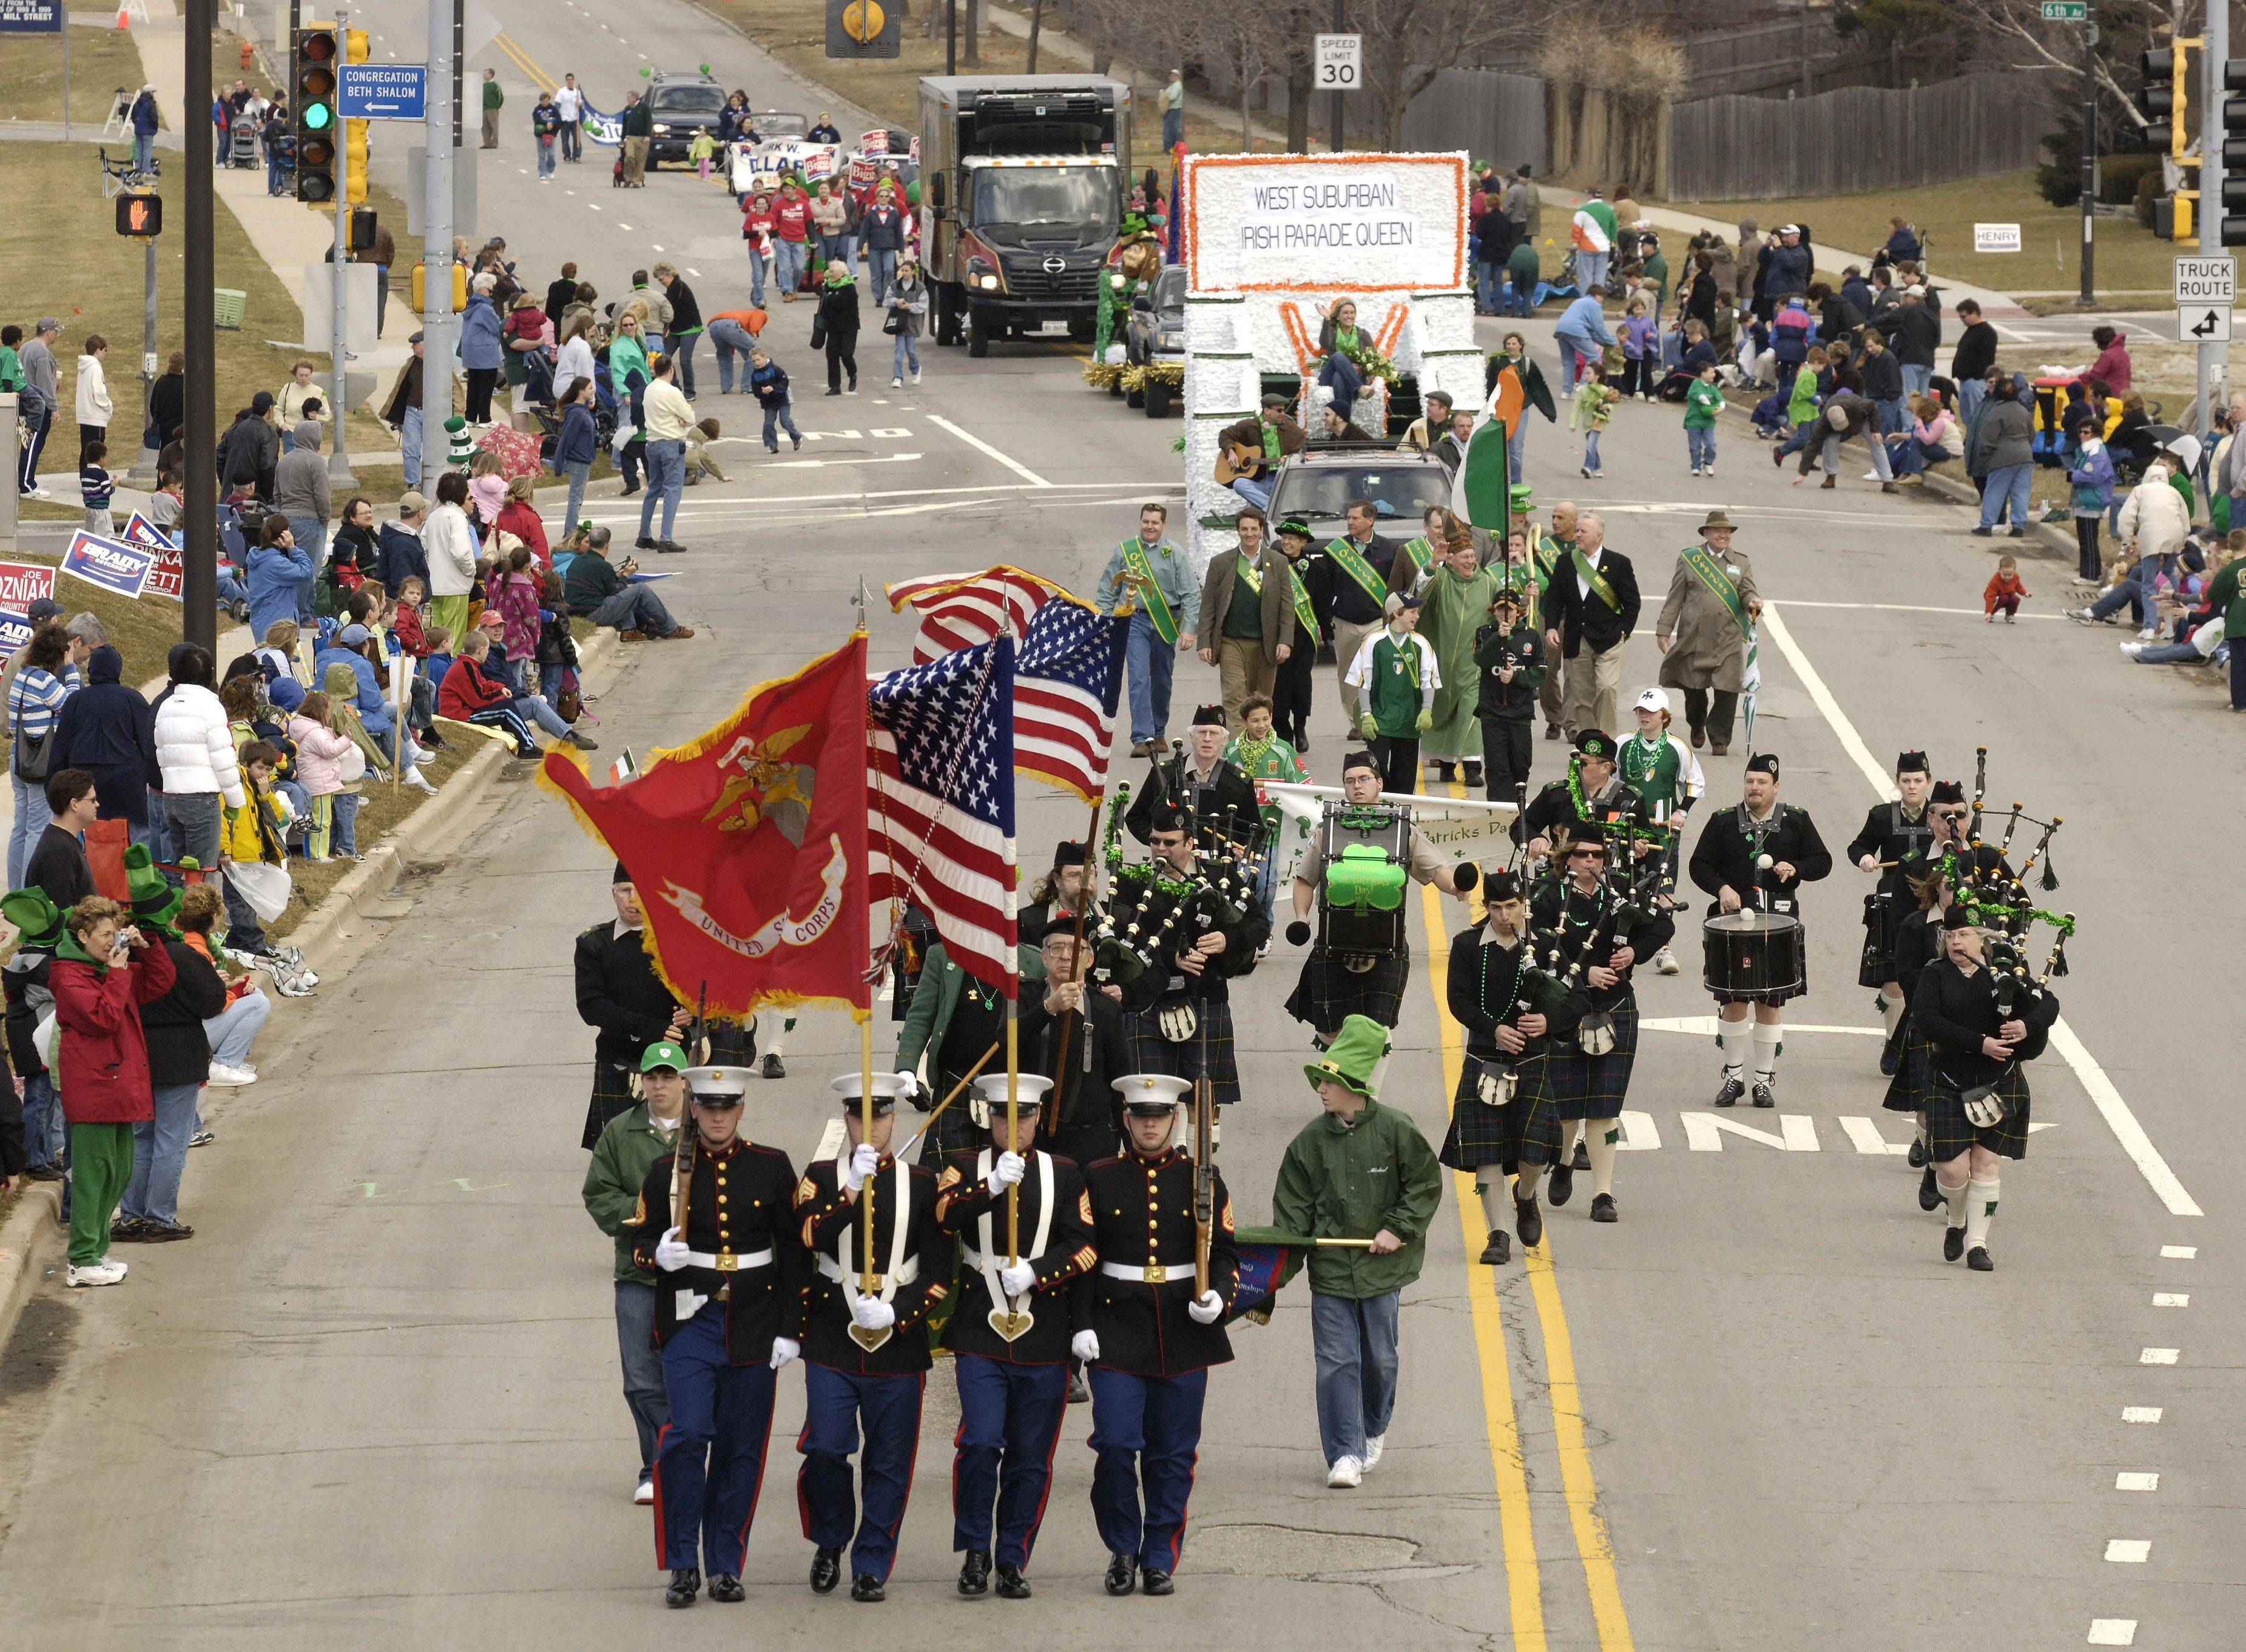 The annual West Suburban Irish St. Patrick's Day Parade will march in Naperville on Saturday.